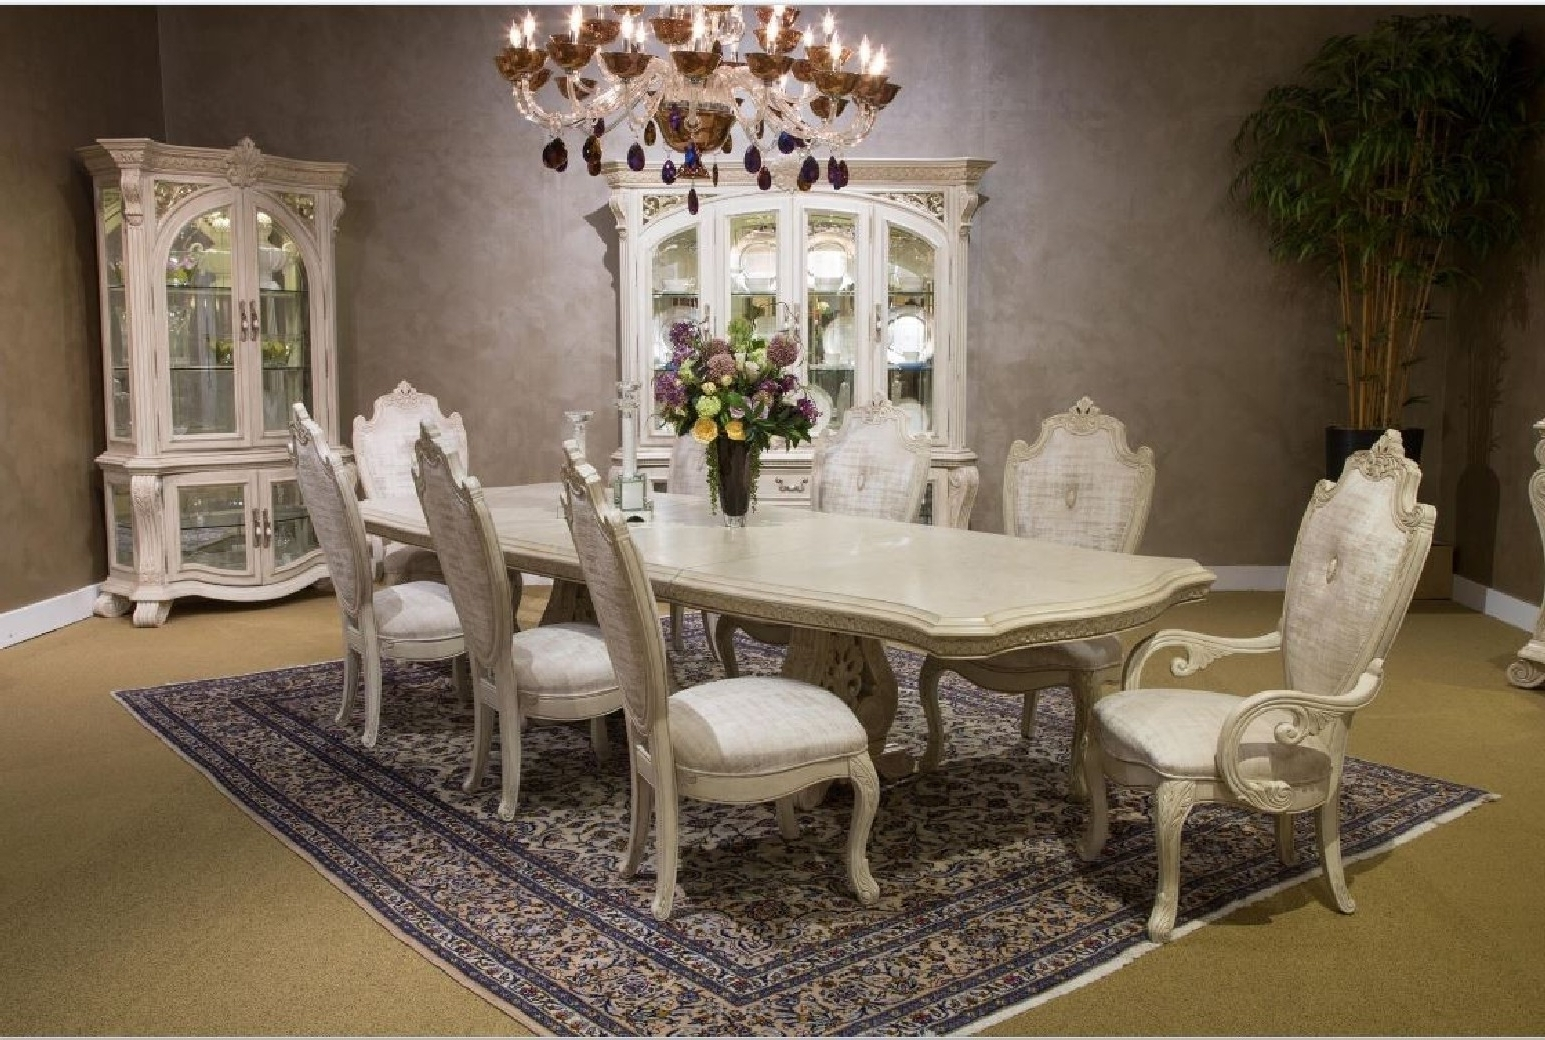 Como Dining Tables Intended For Most Recently Released Aico Villa Di Como Dining Room Collectionmichael Amini Moonlight (Gallery 7 of 25)